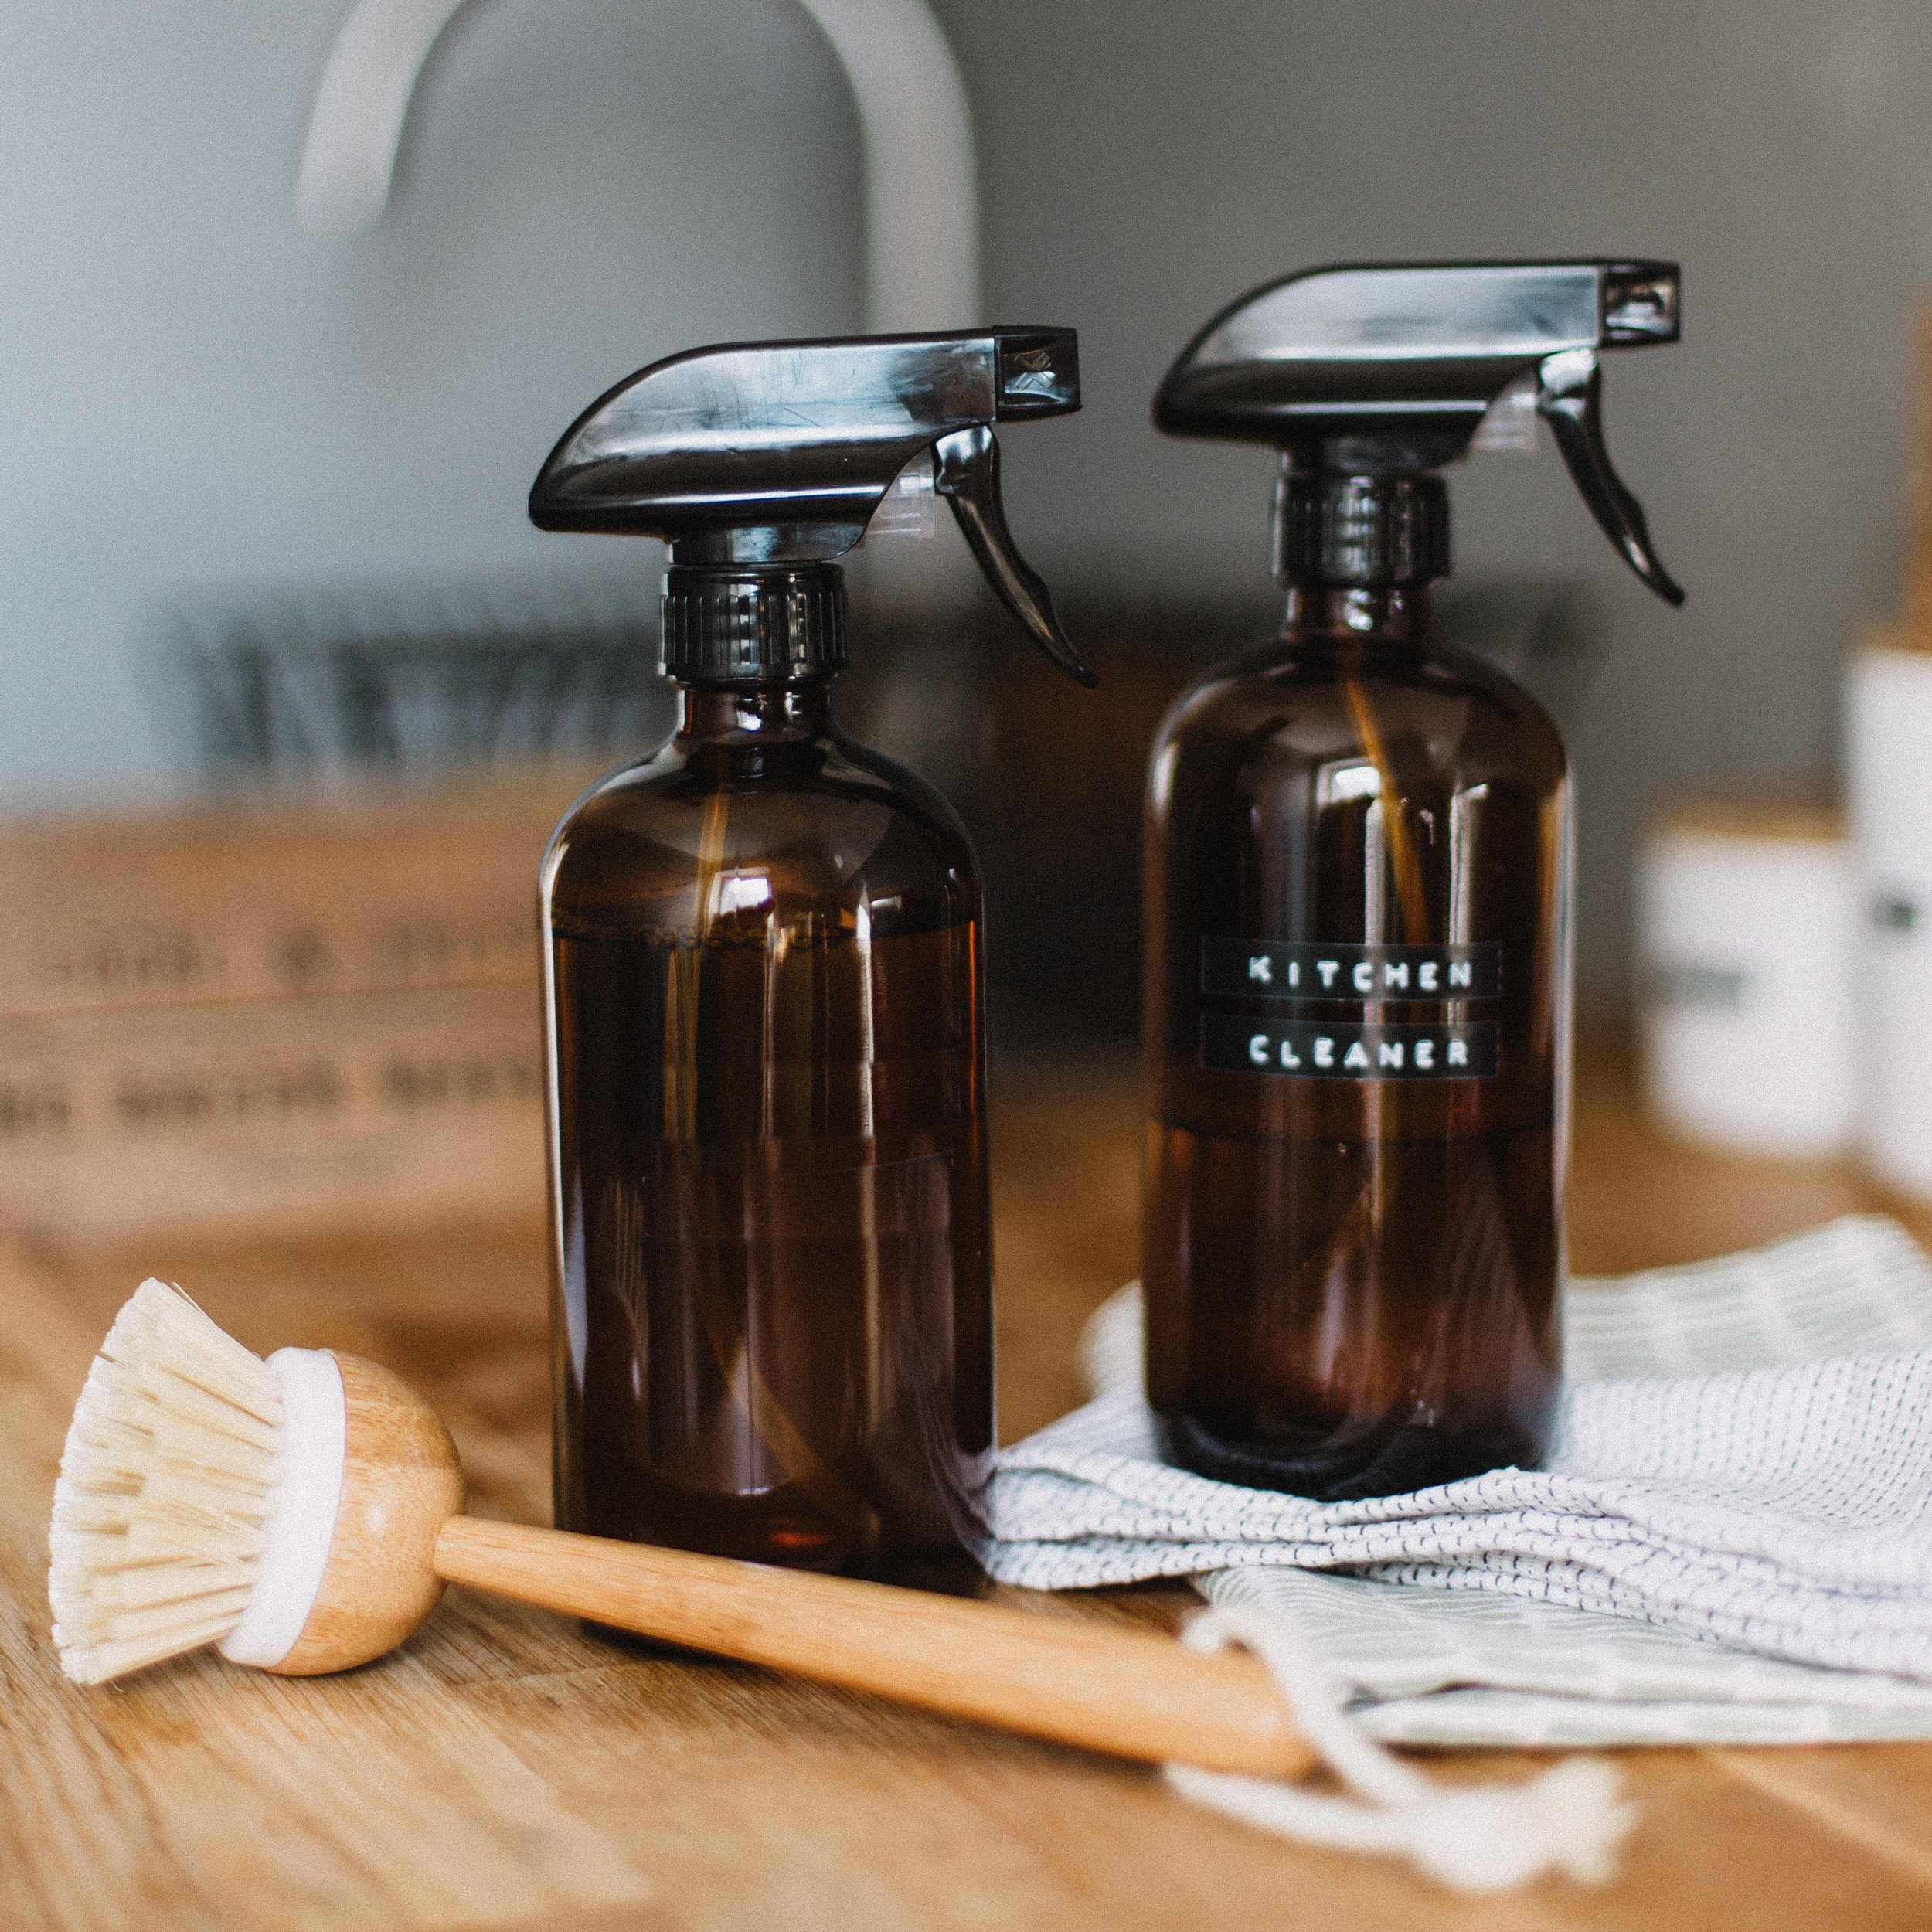 KITCHEN - We have a variety of products to support making your everyday kitchen tasks as green as possible, including: eco cleaners, dish soaps, compostable storage and garbage bags and more.